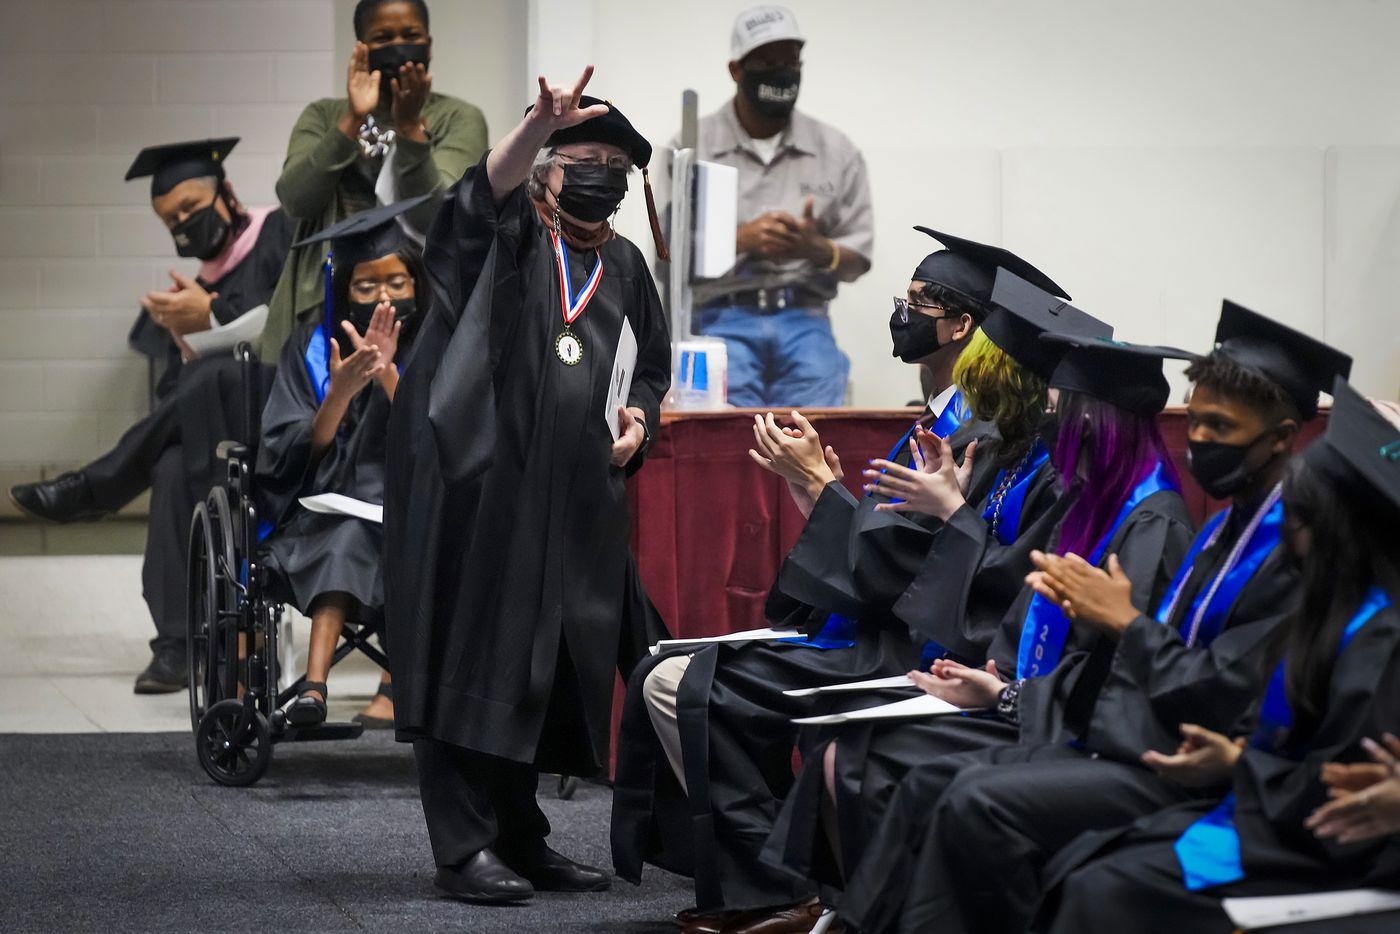 Karon Cogdill, director of the Theater Conservatory for Booker T. Washington High School for the Performing and Visual Arts, is acknowledged during commencement ceremonies for the school at Loos Field House on Saturday, June 19, 2021. Cogdill is retiring after more than 40 years at the school.